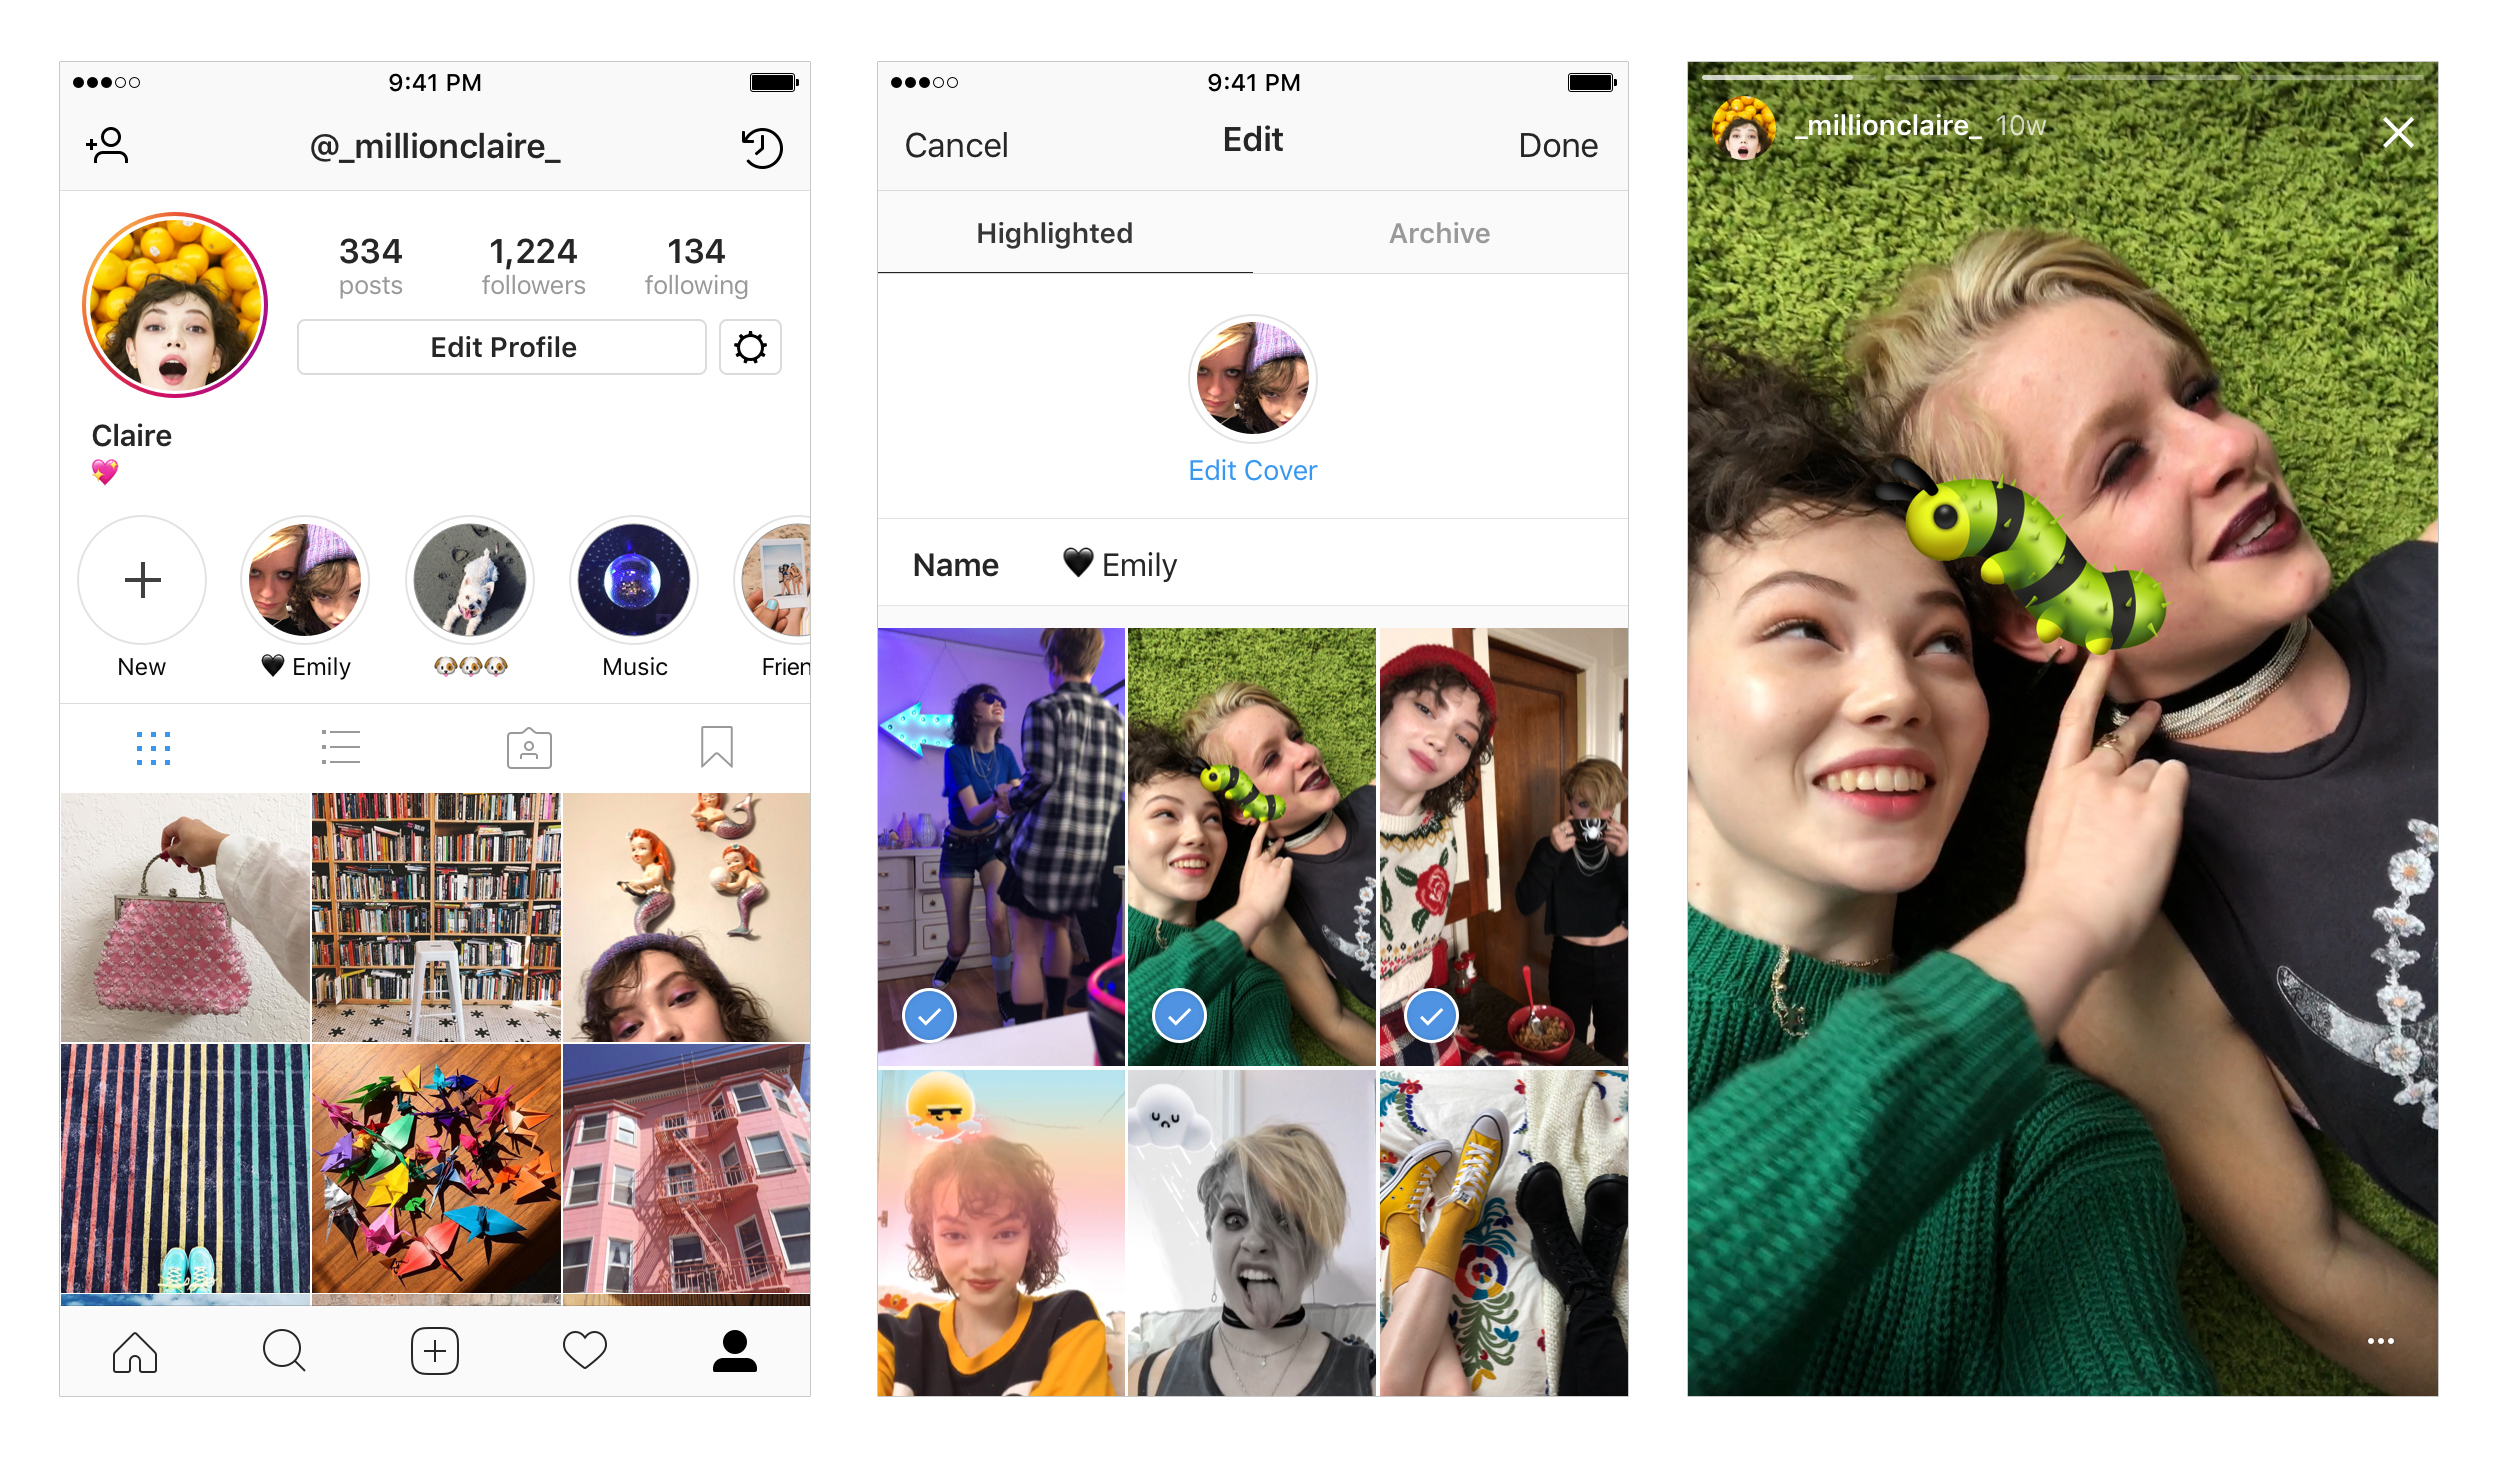 Instagram Update Allows Users To Archive Instagram Stories, Create Highlights